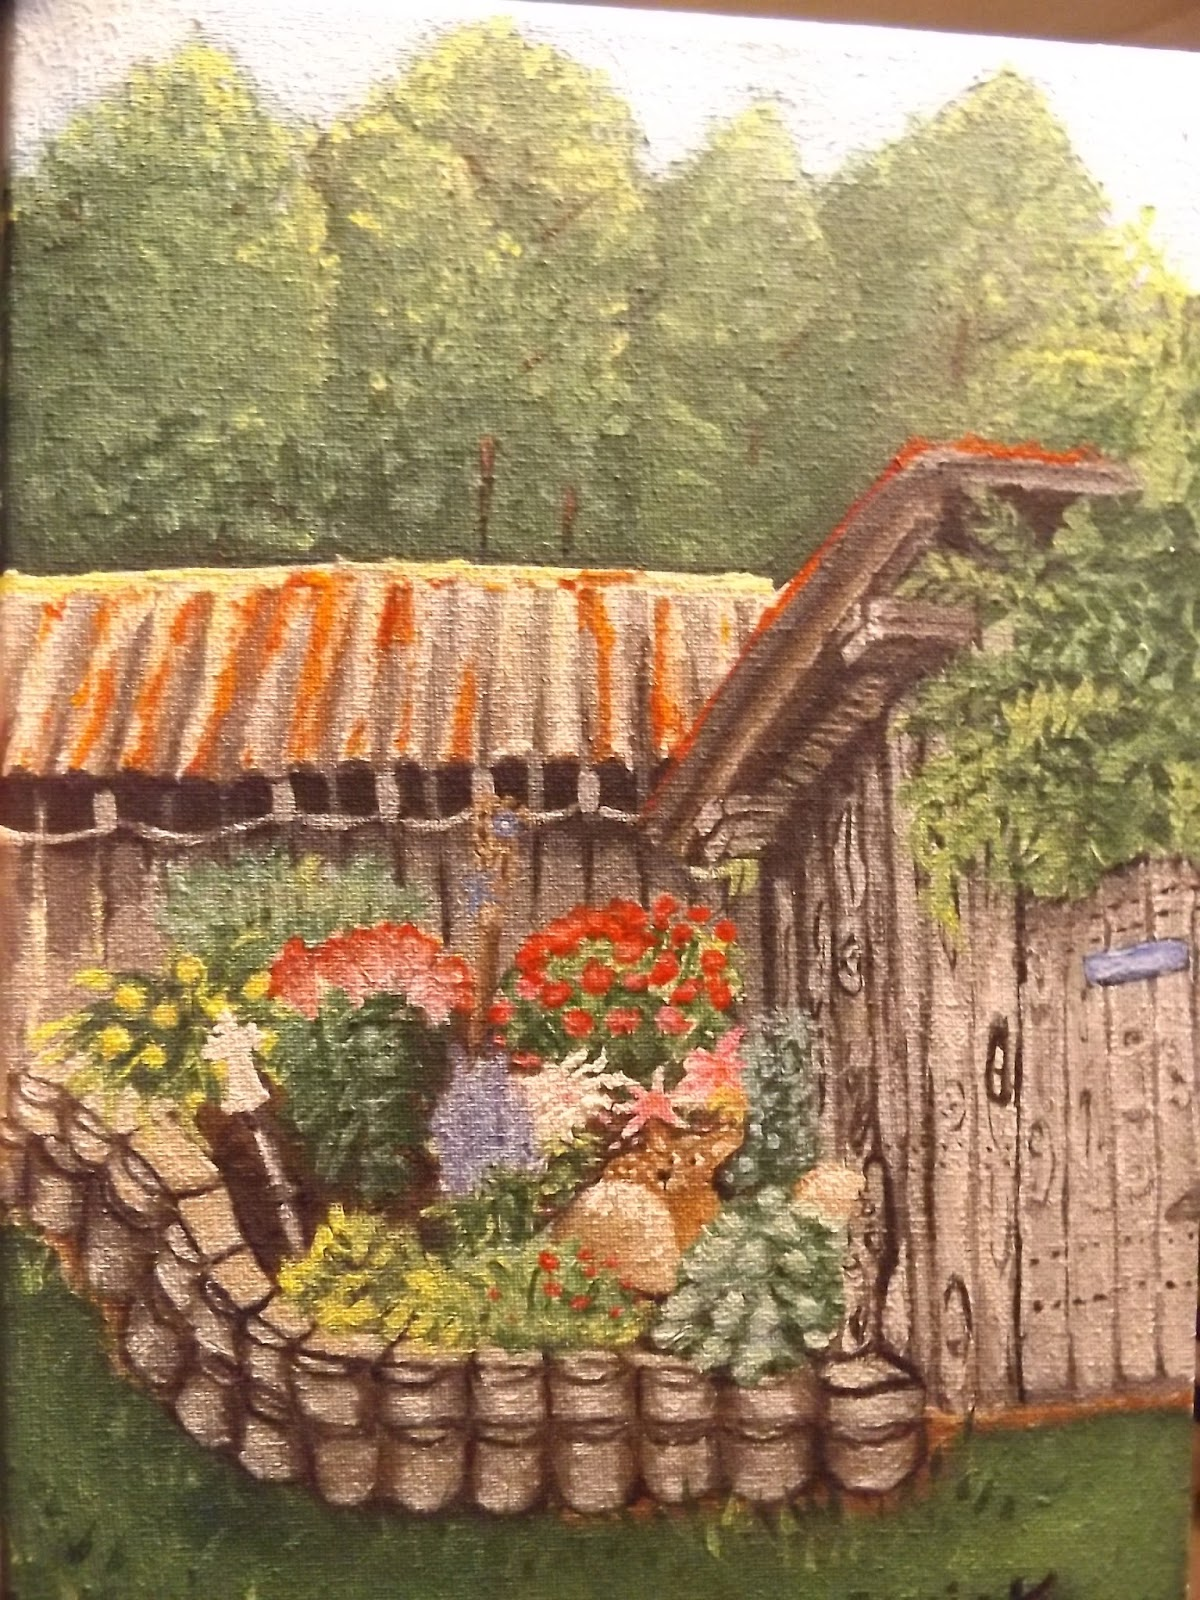 Grandma's Outhouse